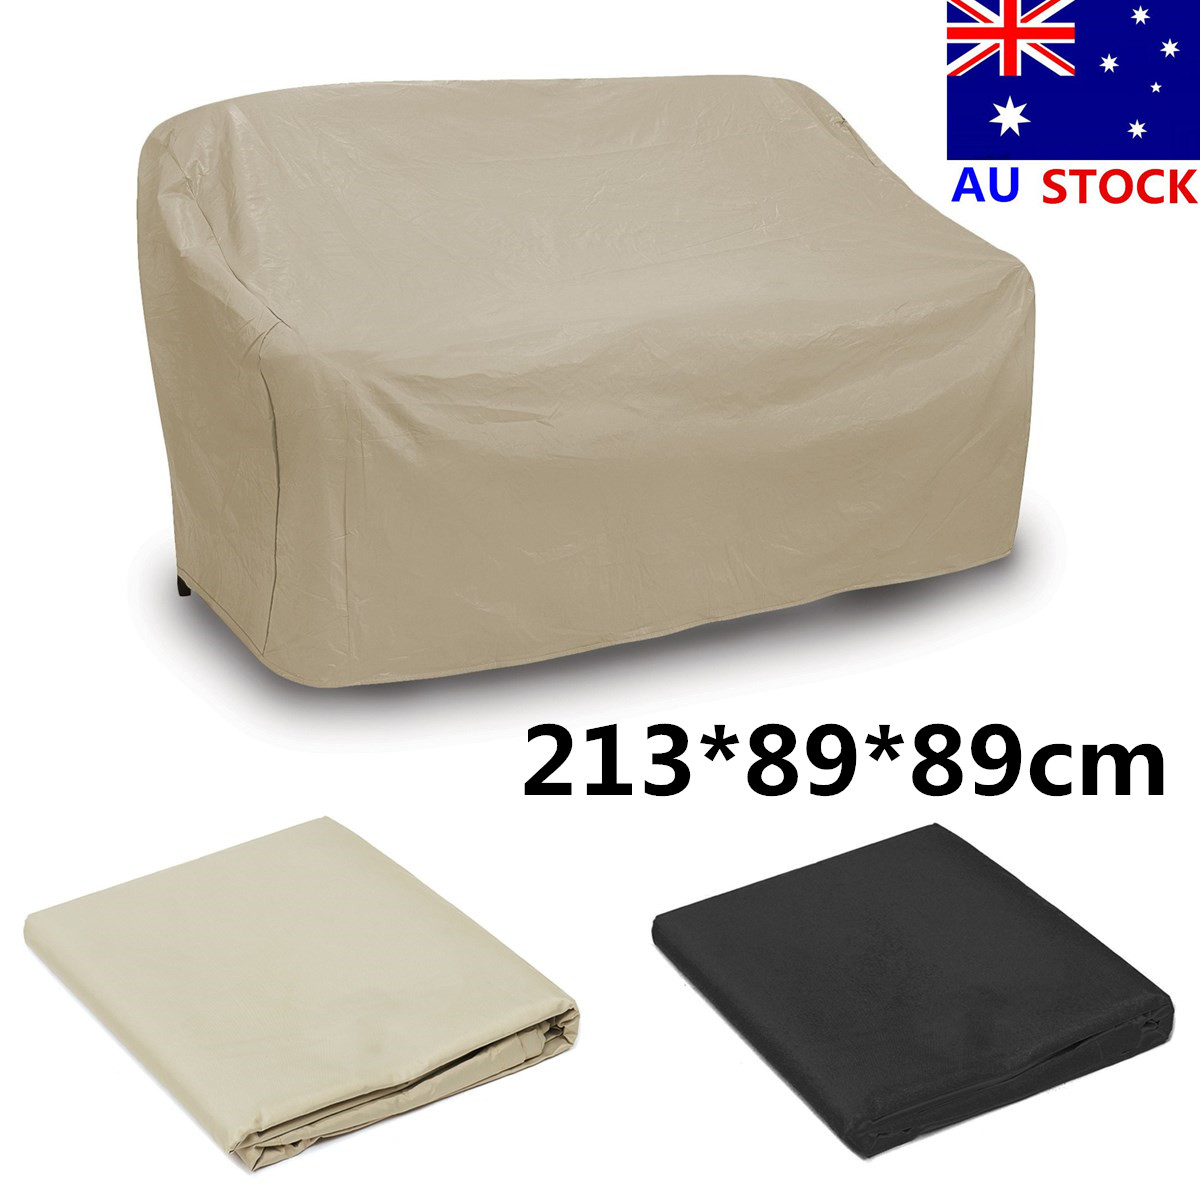 2138989cm Waterproof Furniture Sofa Patio Garden Rain Cover Outdoor Protection